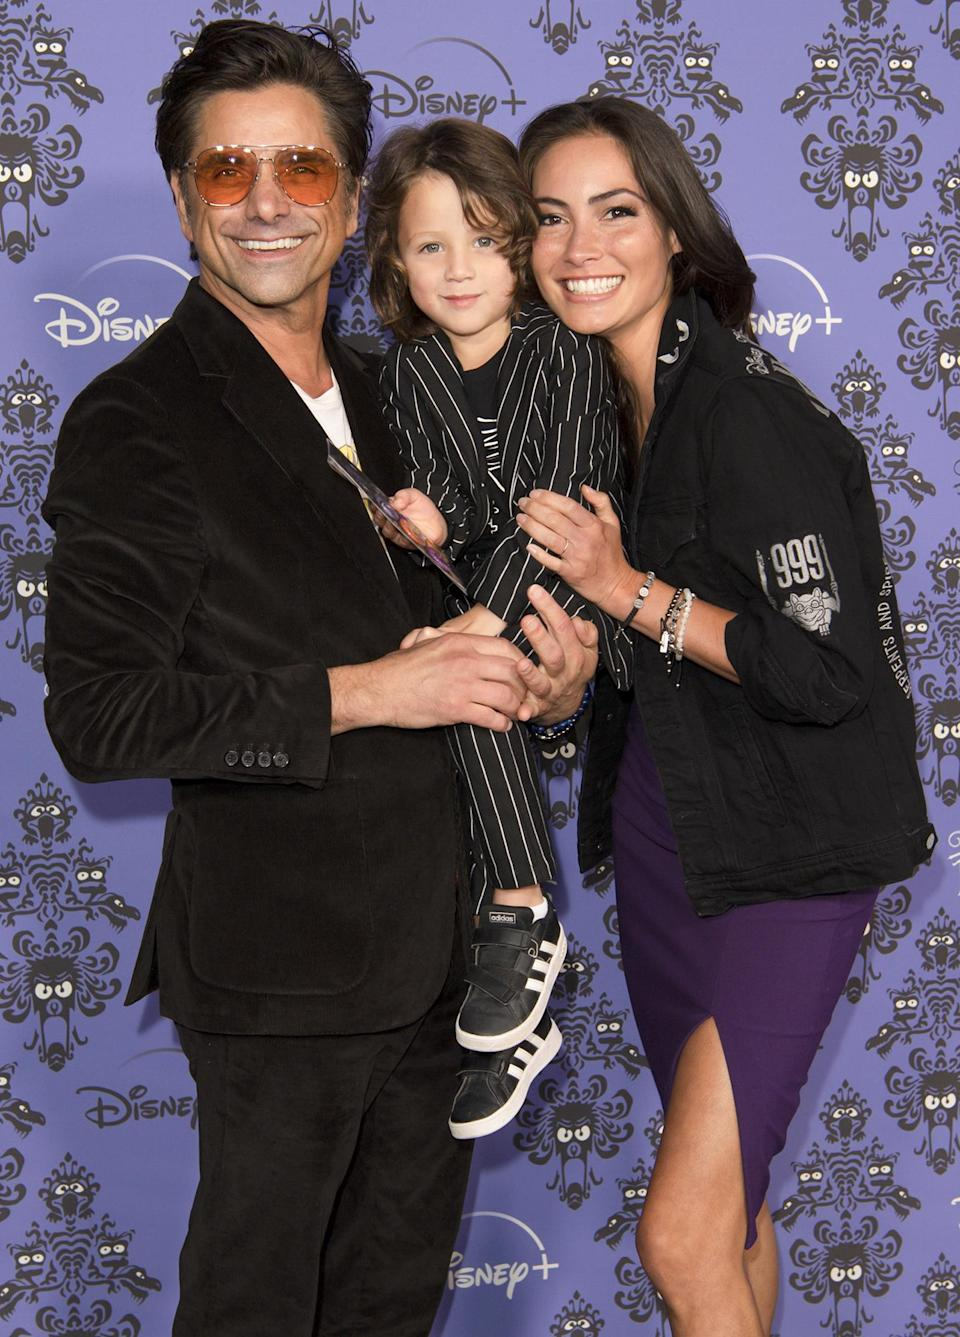 <p>John Stamos, wife Caitlin and their son Billy stick together on Oct. 7 at the Los Angeles premiere of <em>Muppets Haunted Mansion. </em></p>